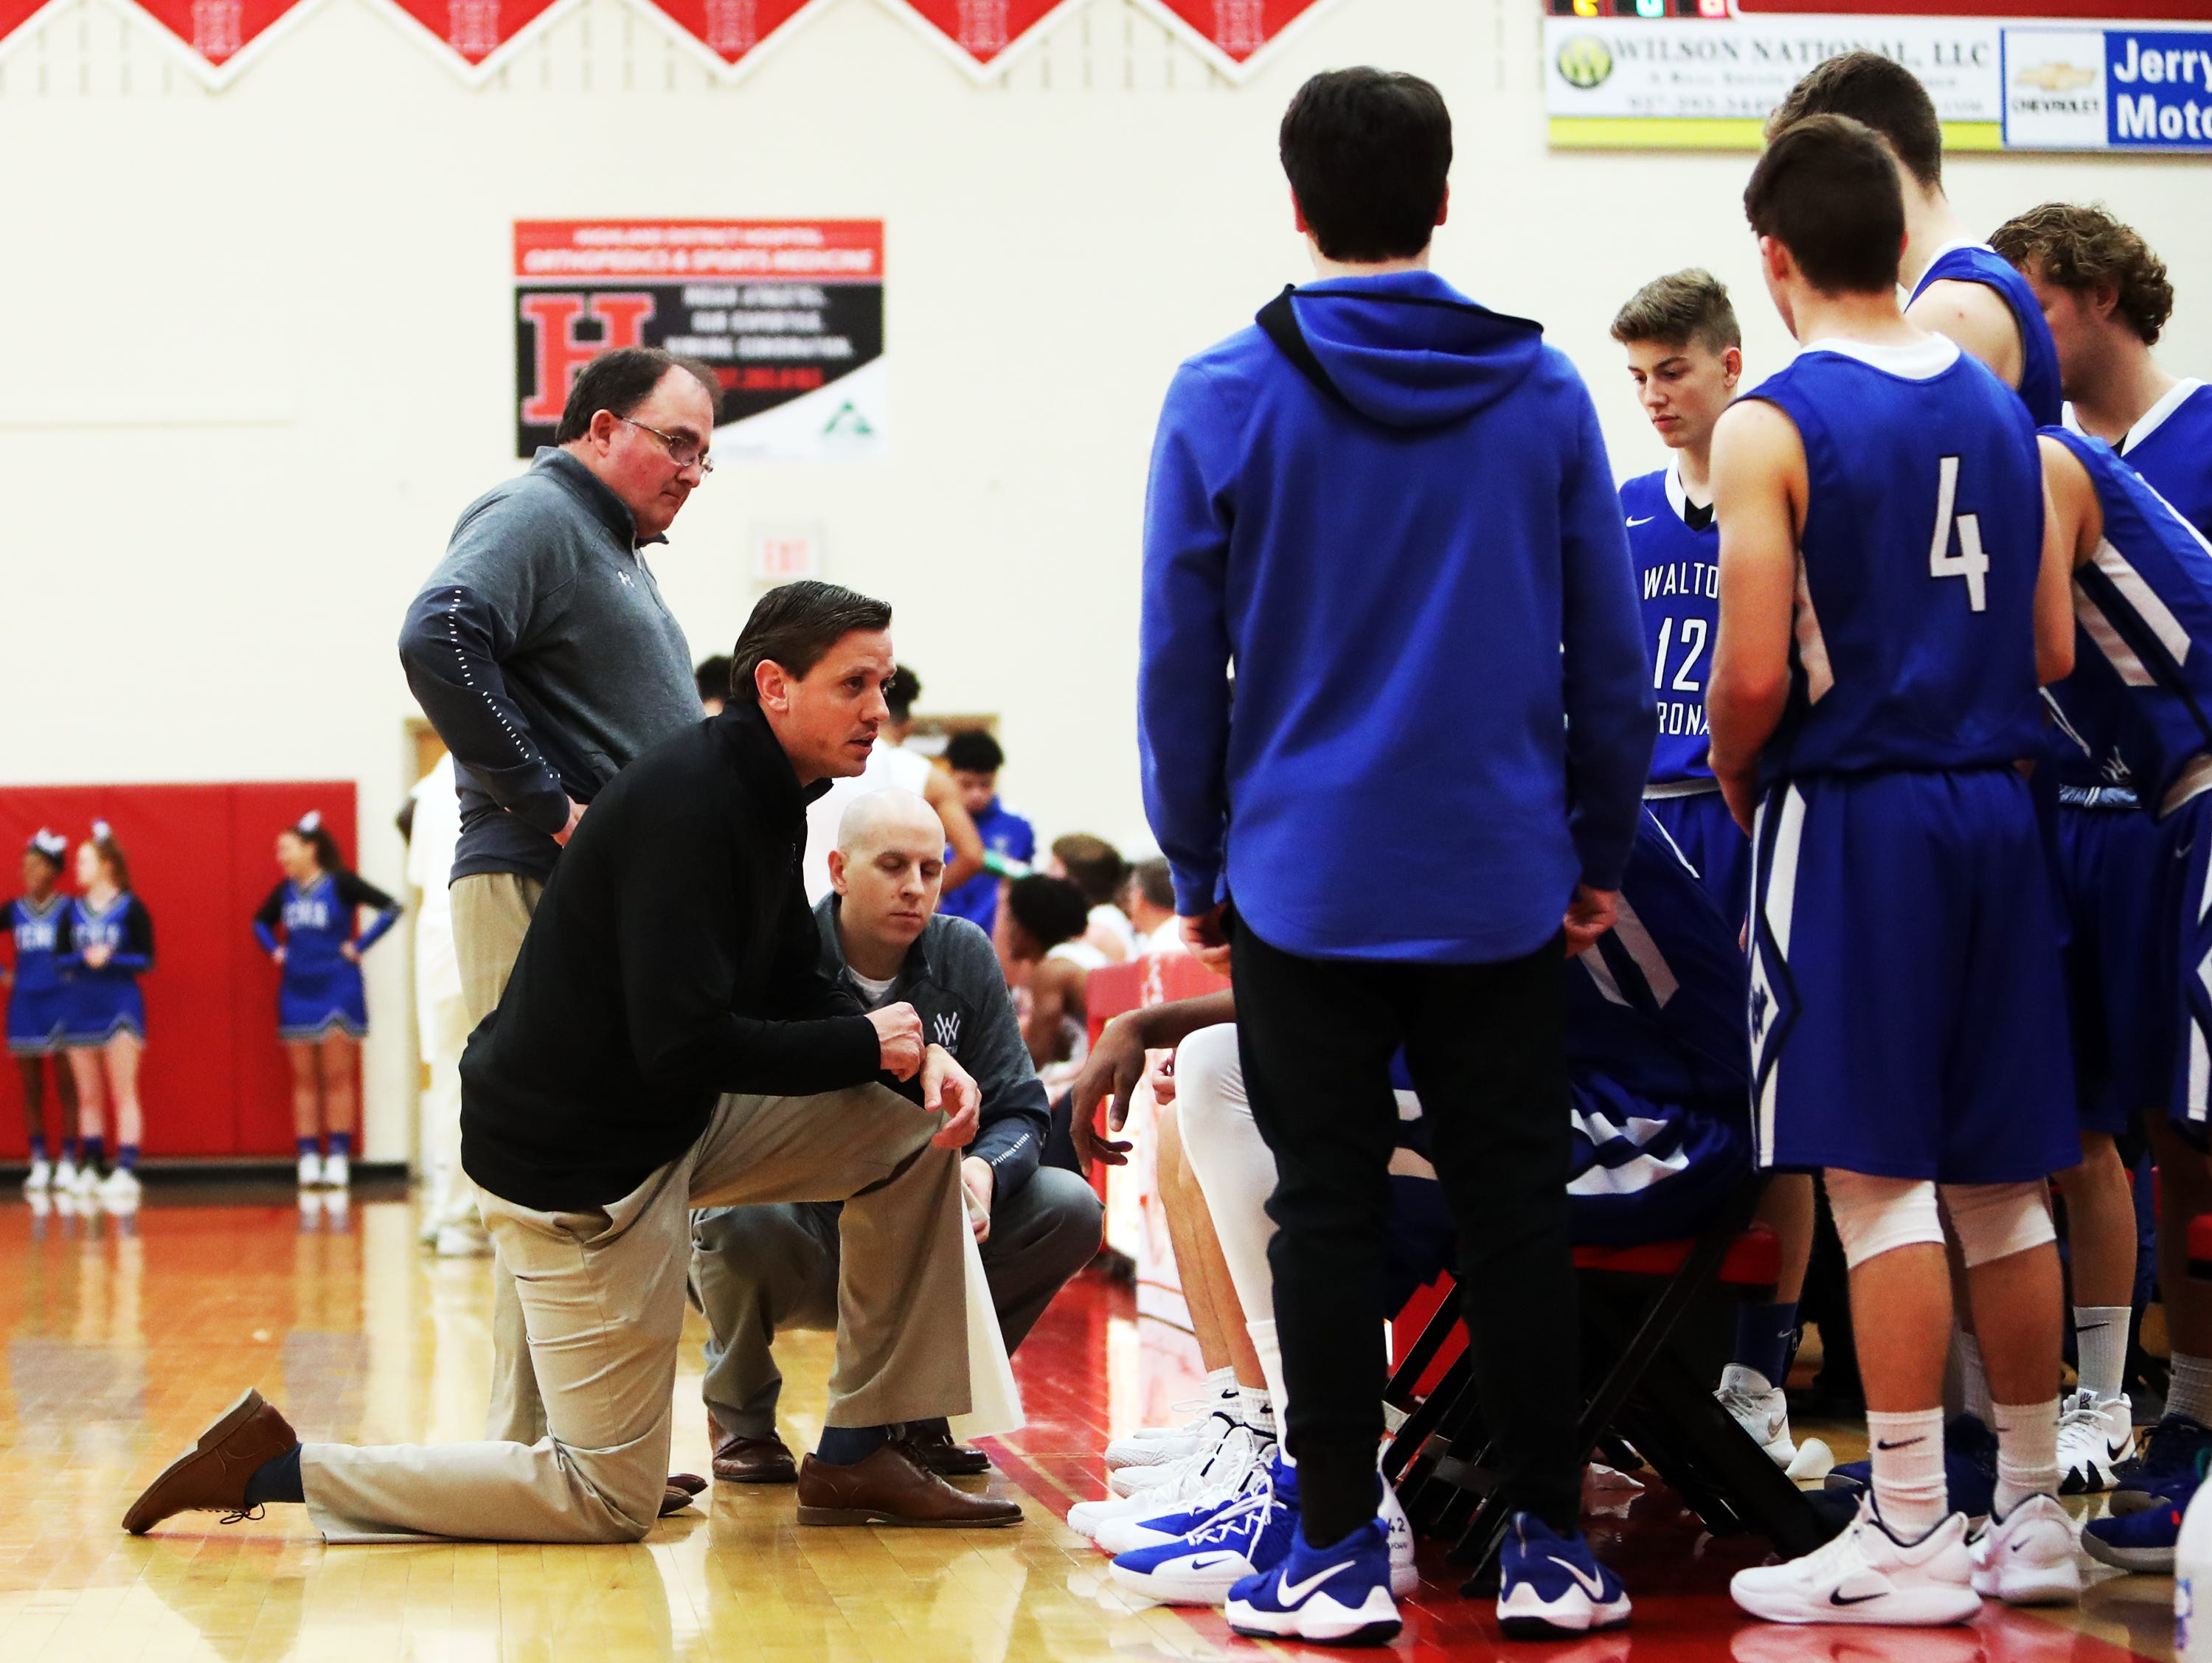 Walton Verona head coach Grant Brannen instructs his team during a time out at the Ohio Valley Hoops Classic at Hillsboro High School. Walton Verona defeated Xenia 62-54.